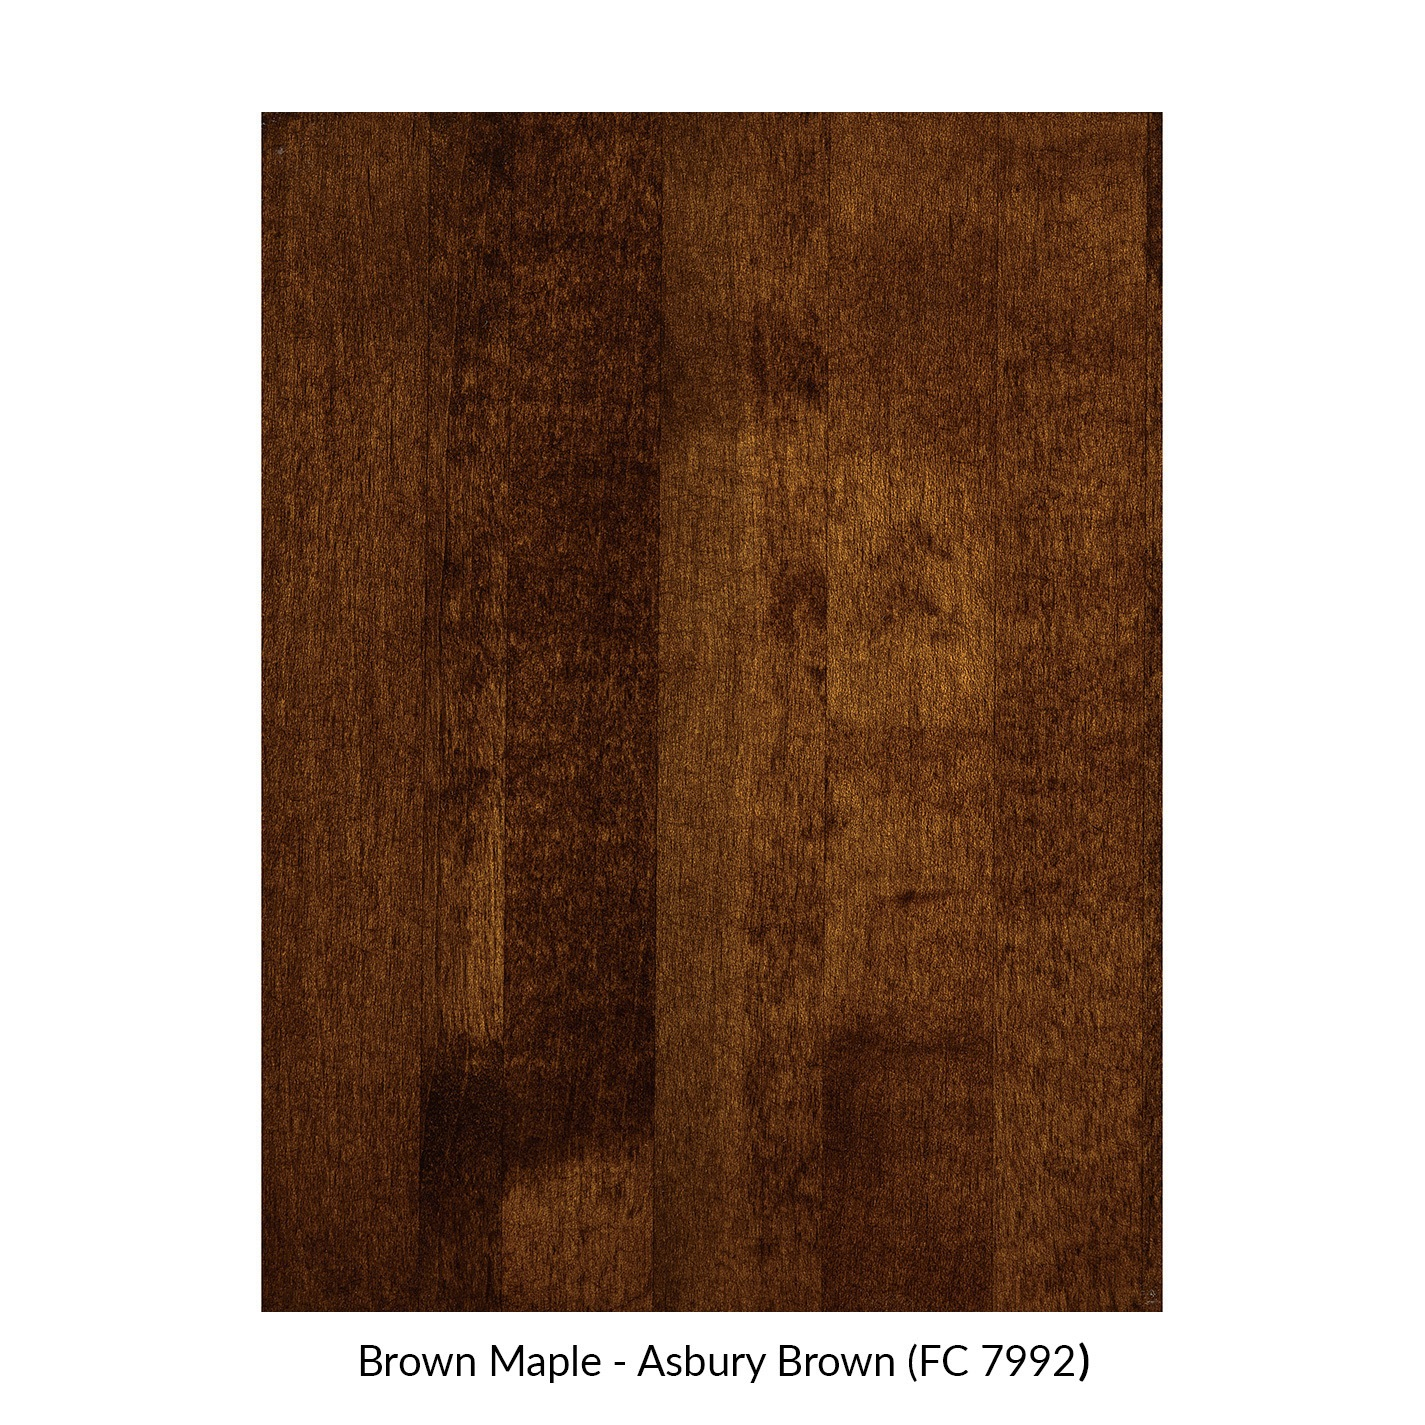 spectrum-brown-maple-asbury-brown-fc-7992.jpg